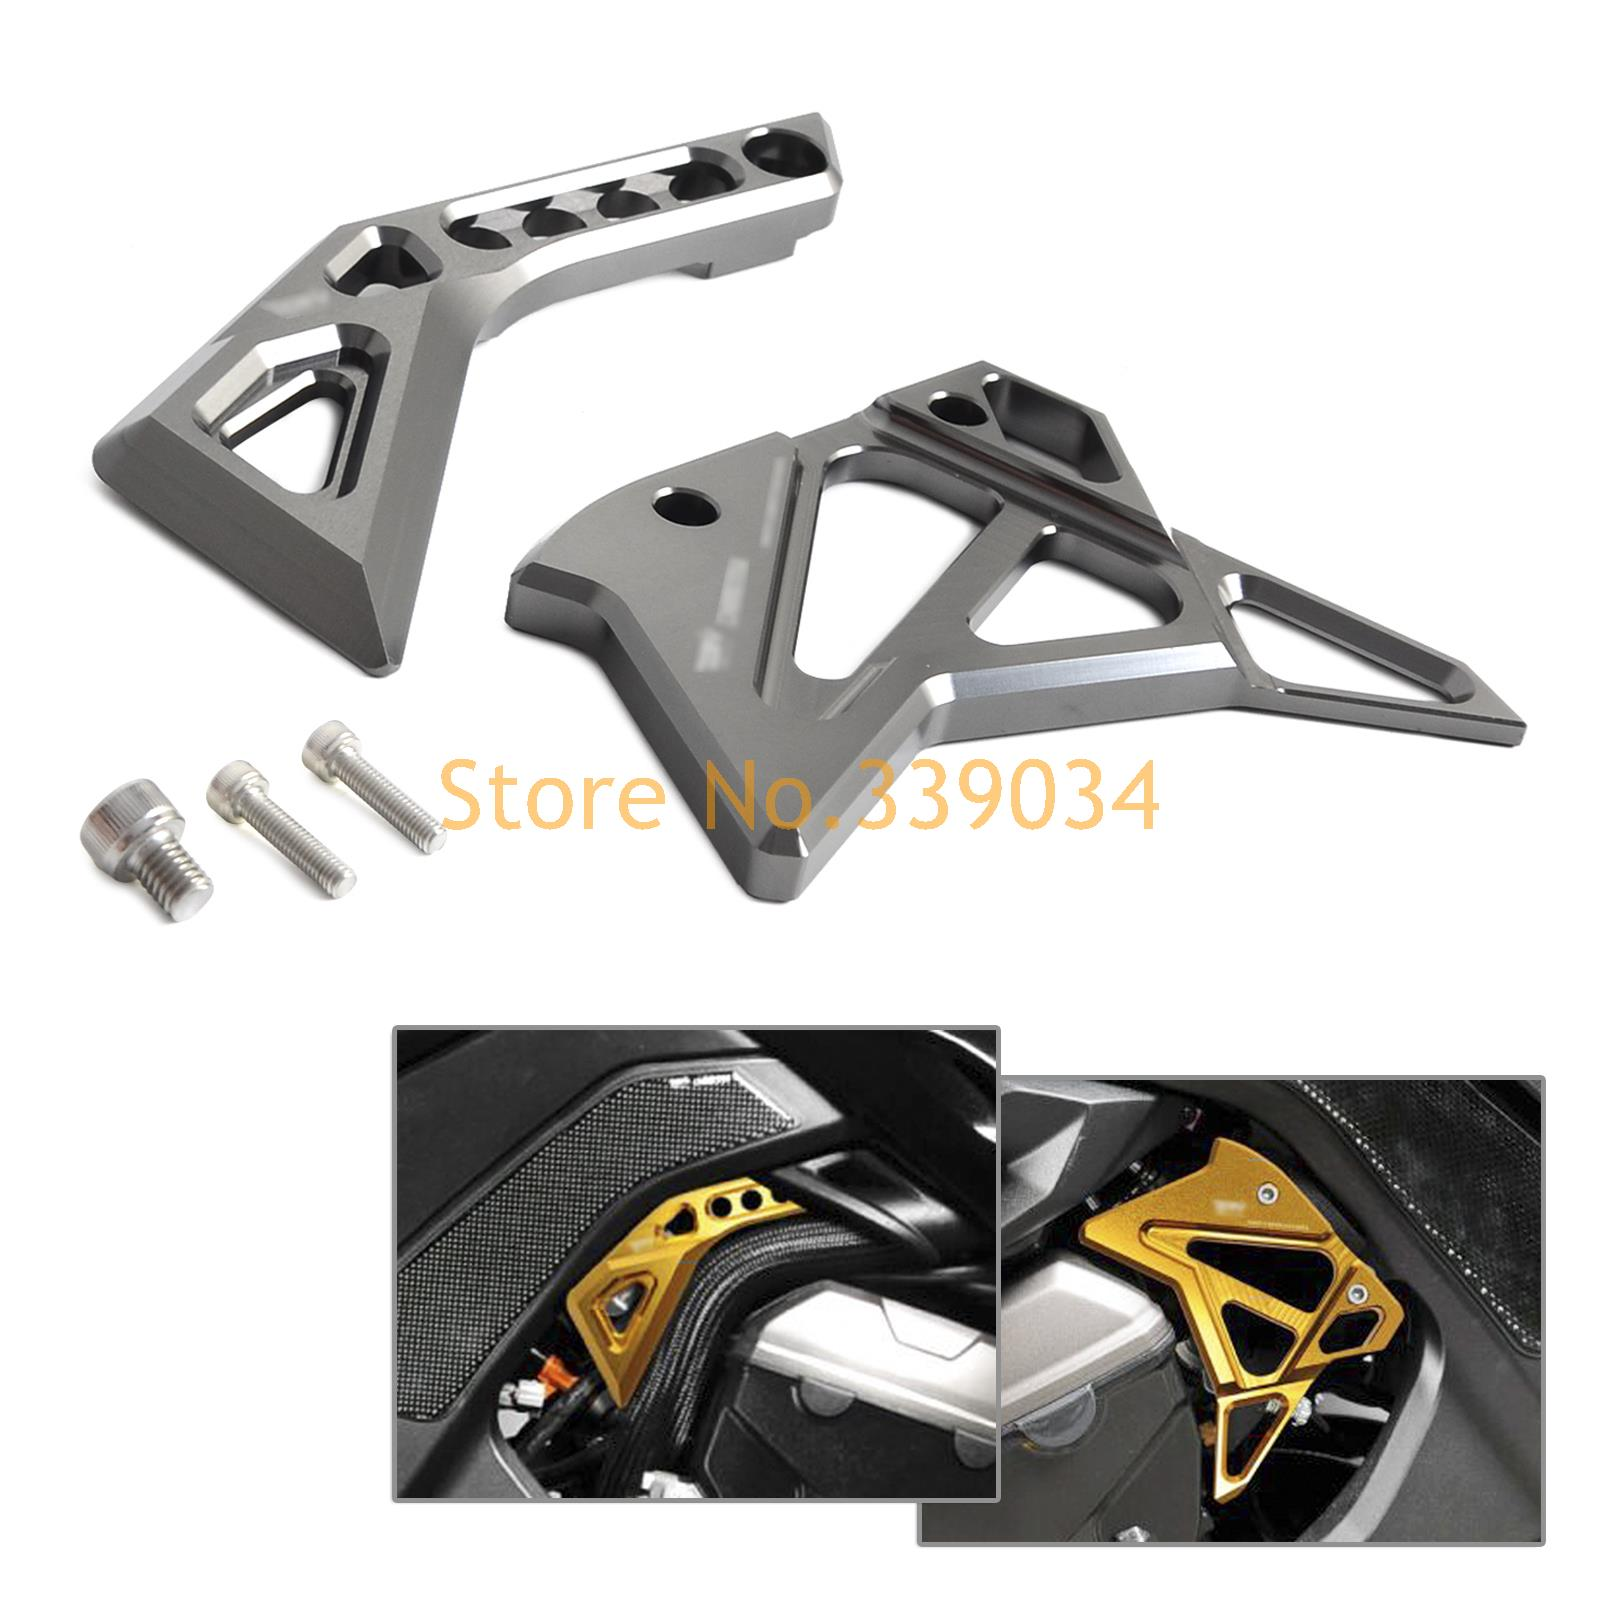 CNC Fuel Injection Jnjector Cover Guard For Kawasaki Z1000 2014 2015 2016 Z 1000 cnc aluminum frame fuel injection injector cover protector guard for kawasaki z1000 2014 2016 14 15 16